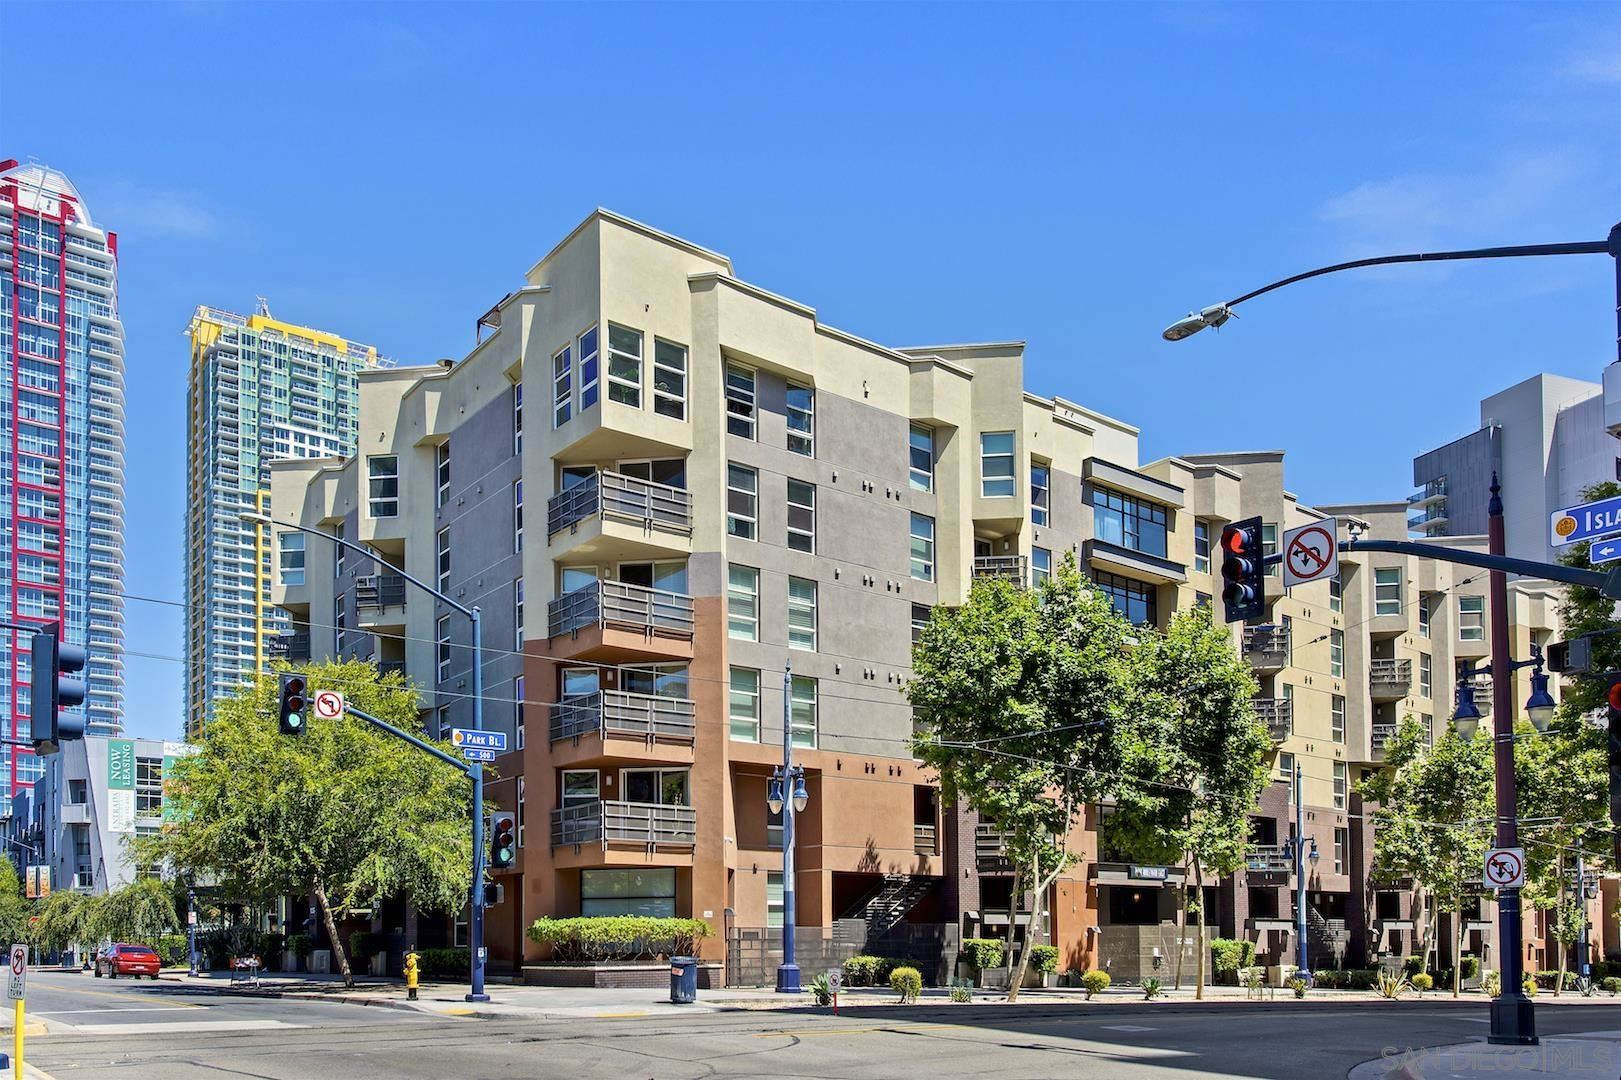 Photo for 1225 Island Ave #512, San Diego, CA 92101 (MLS # 210011811)